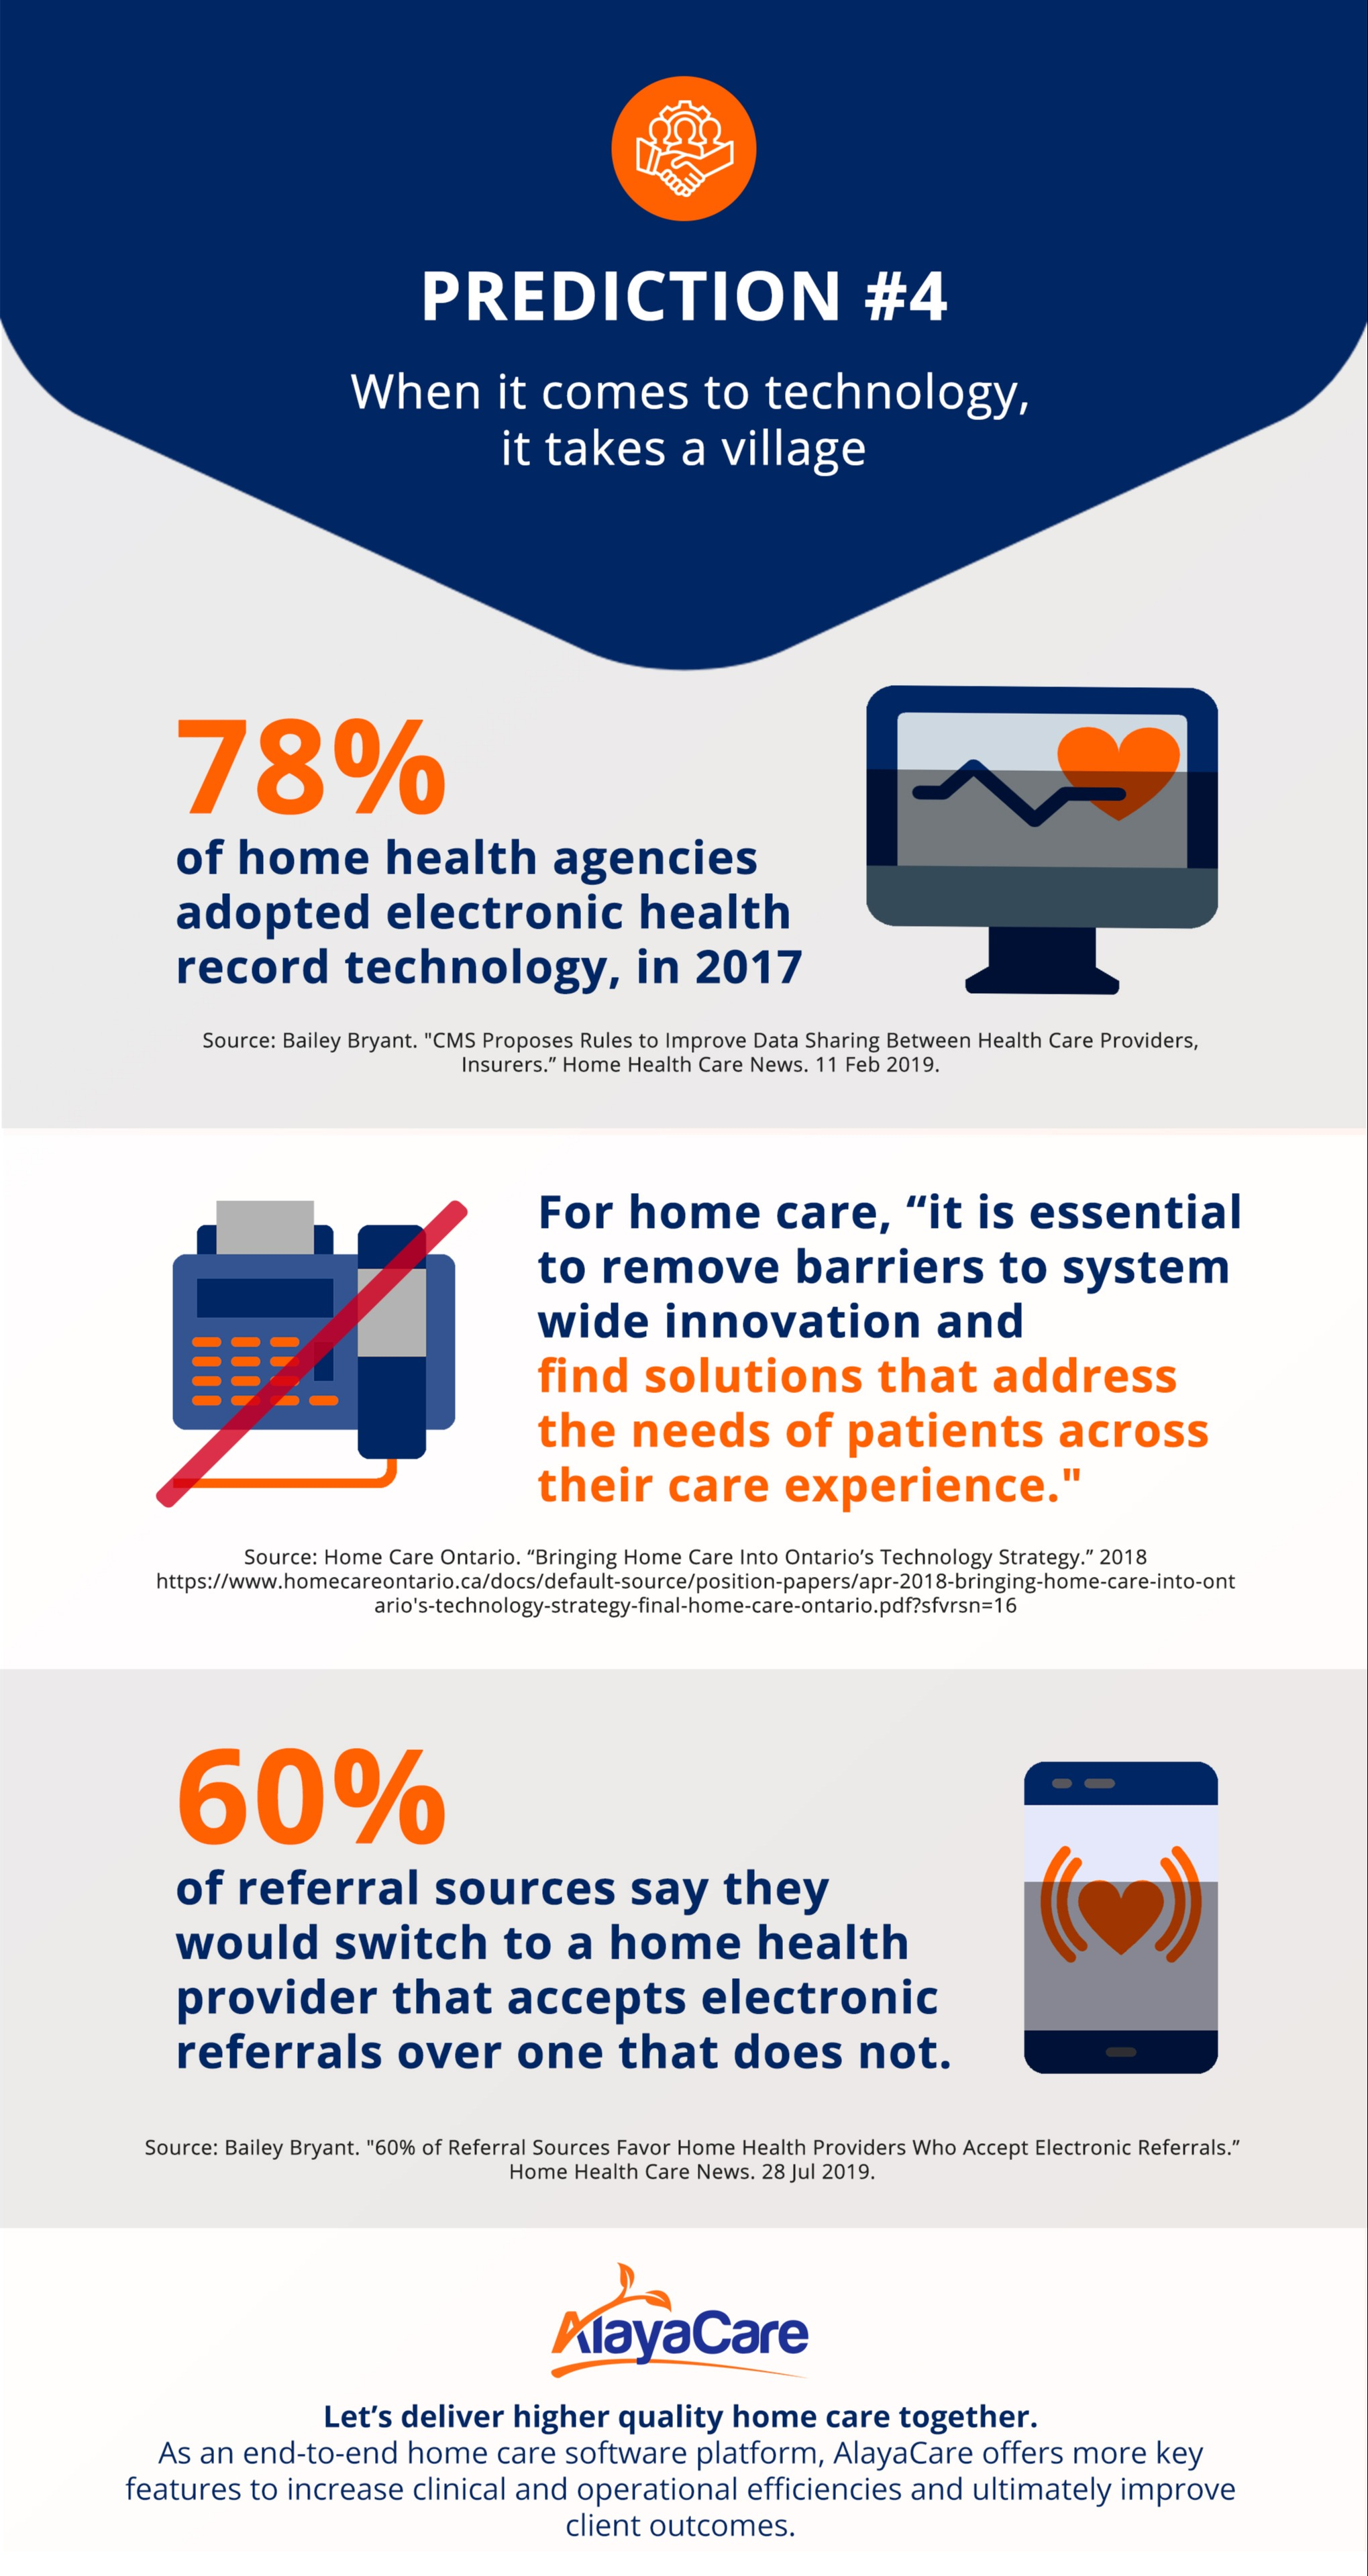 2020 home care trends 4